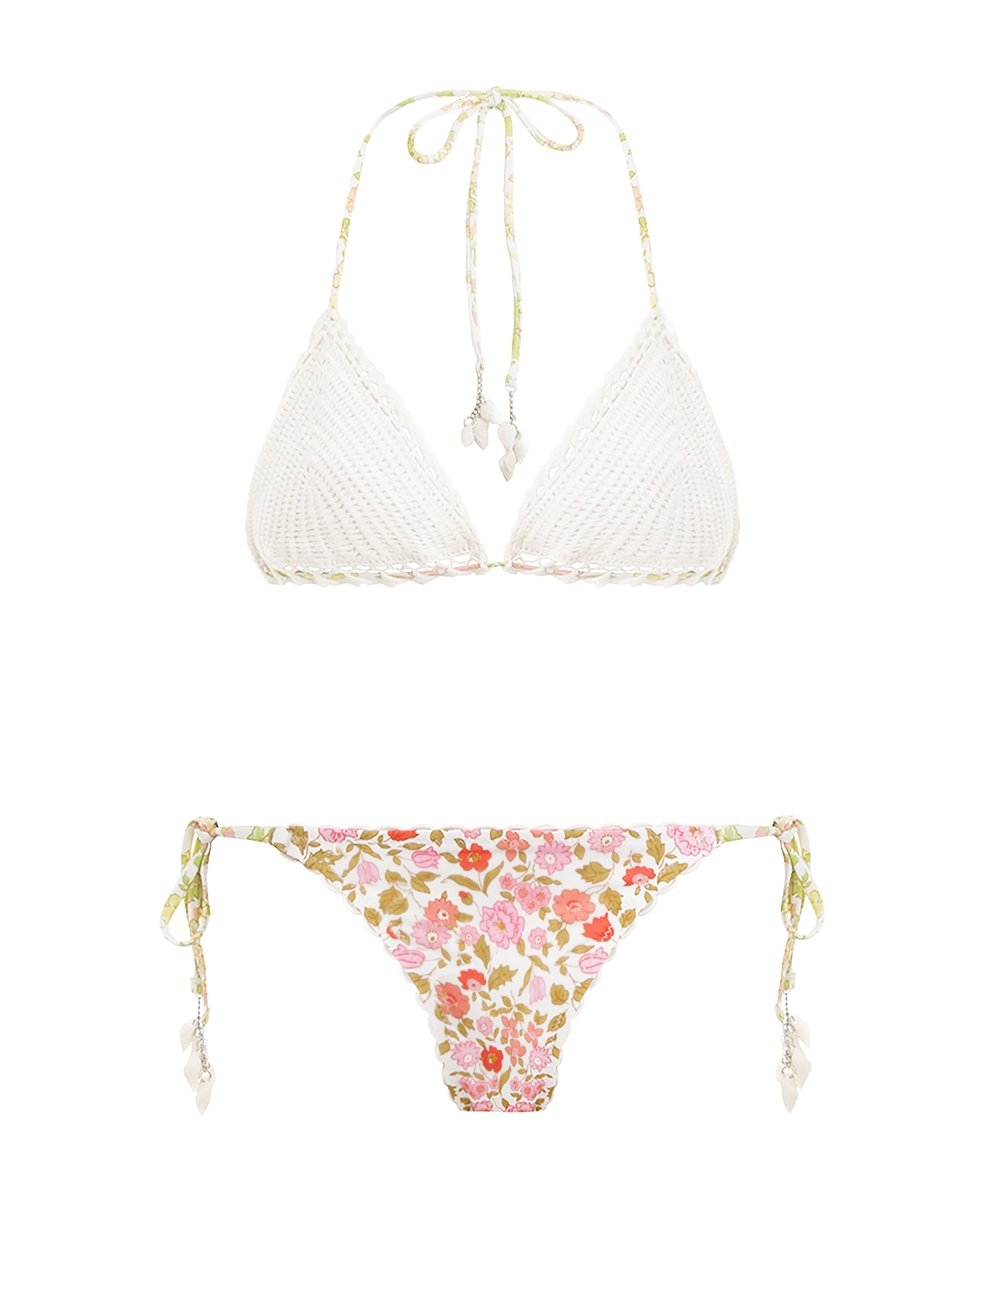 6a6ade01b47ab Shop Women's Swimwear Online | ZIMMERMANN